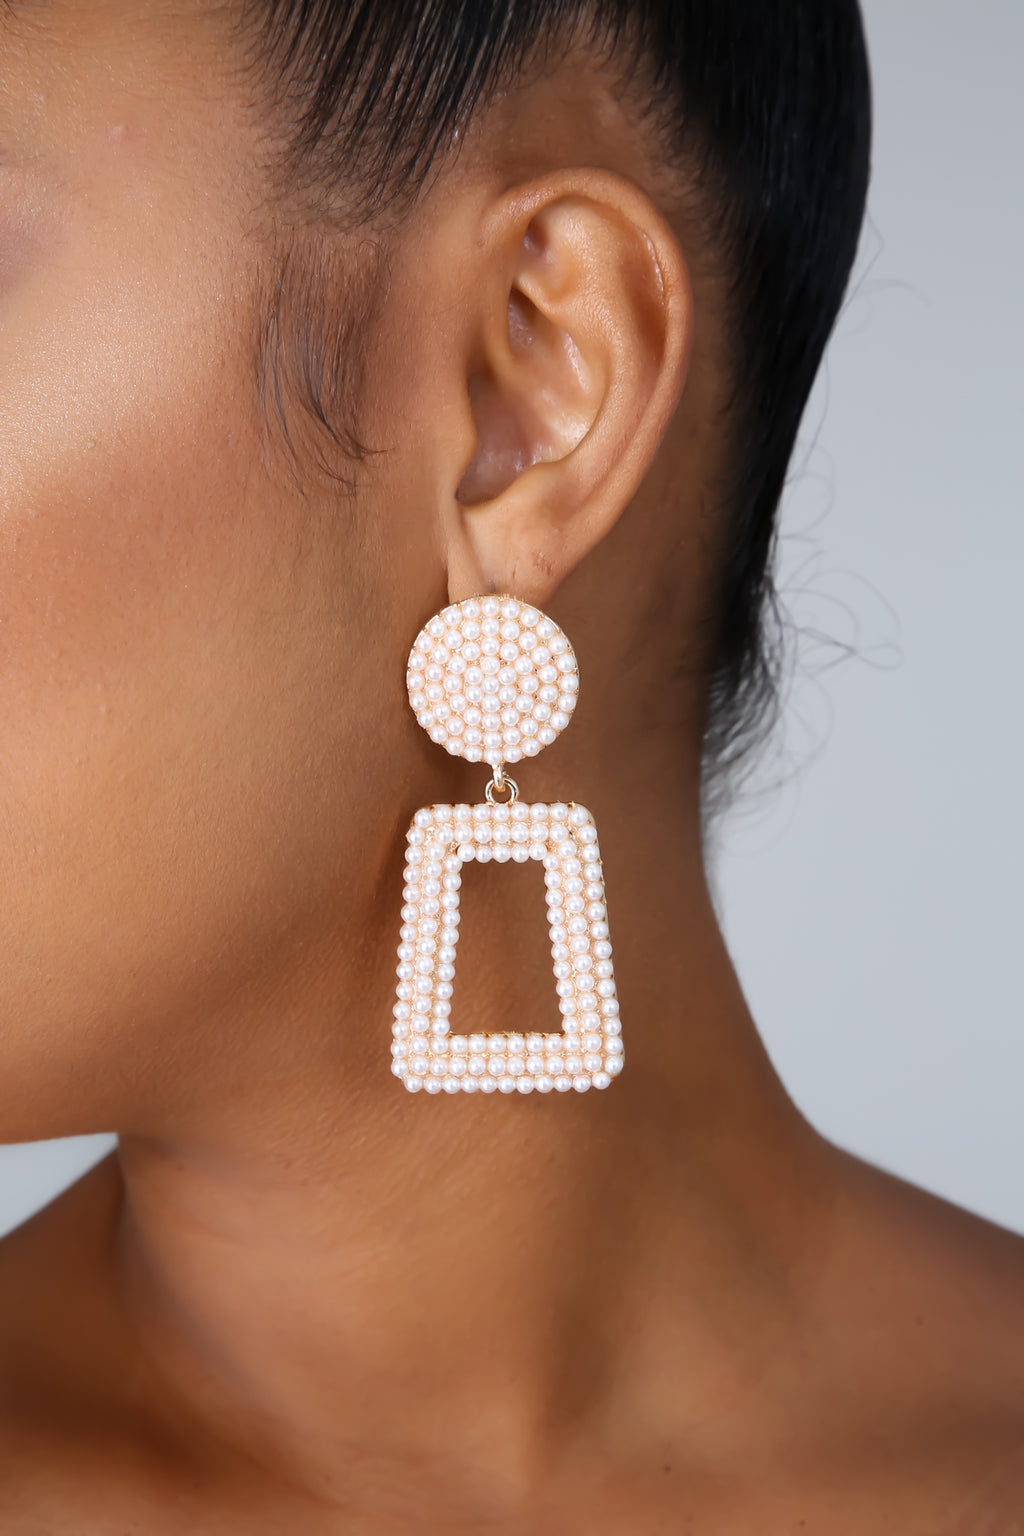 Classy Gal Earrings